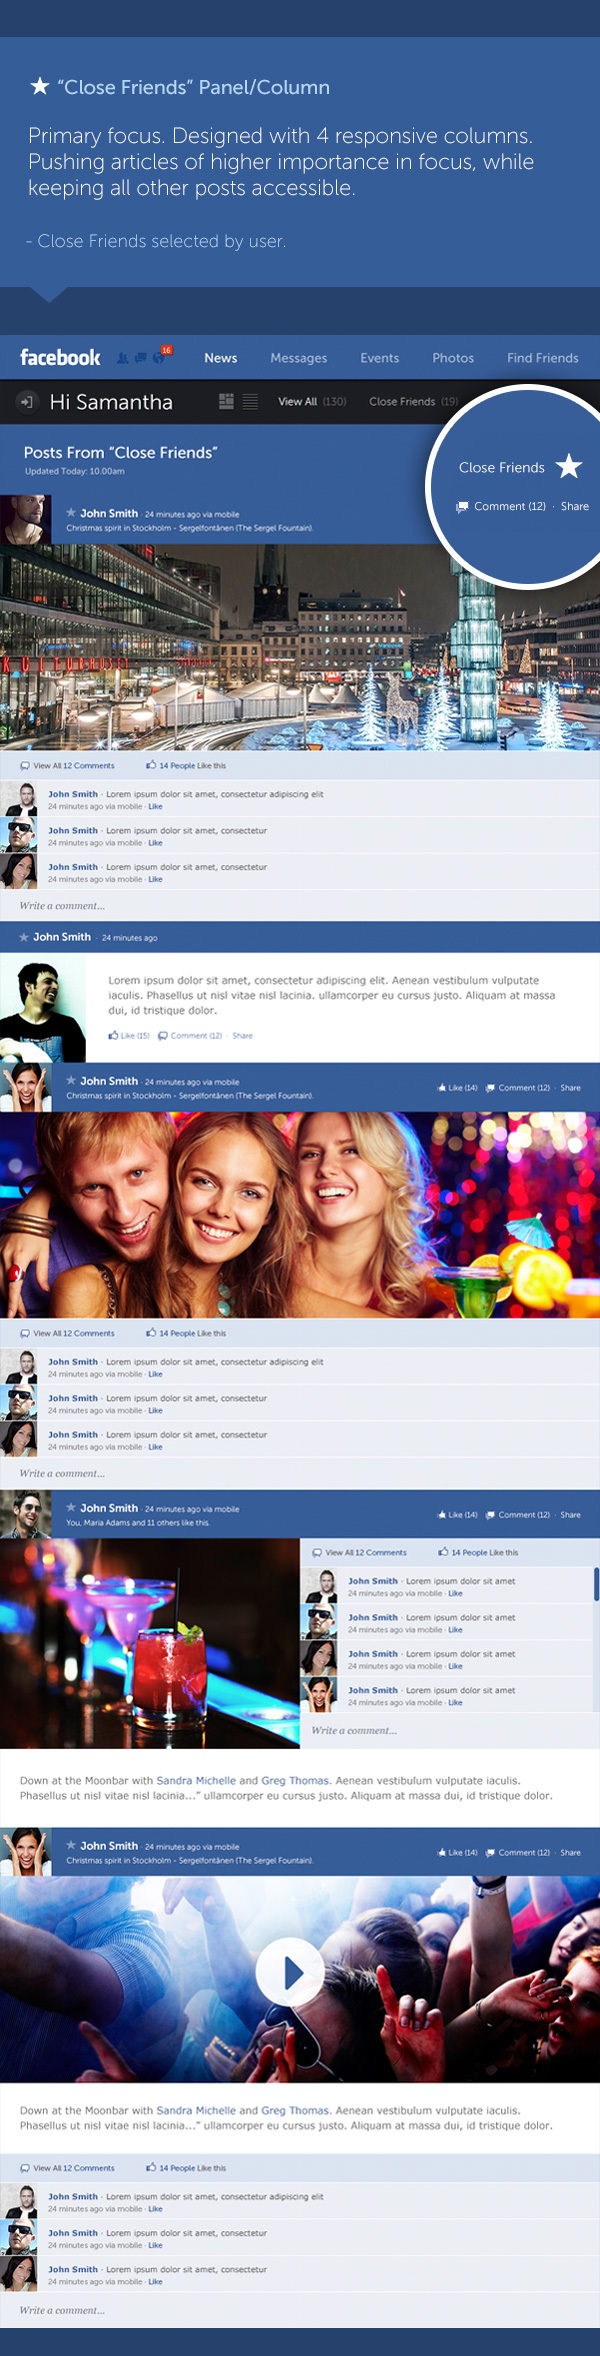 Facebook new design concept 3